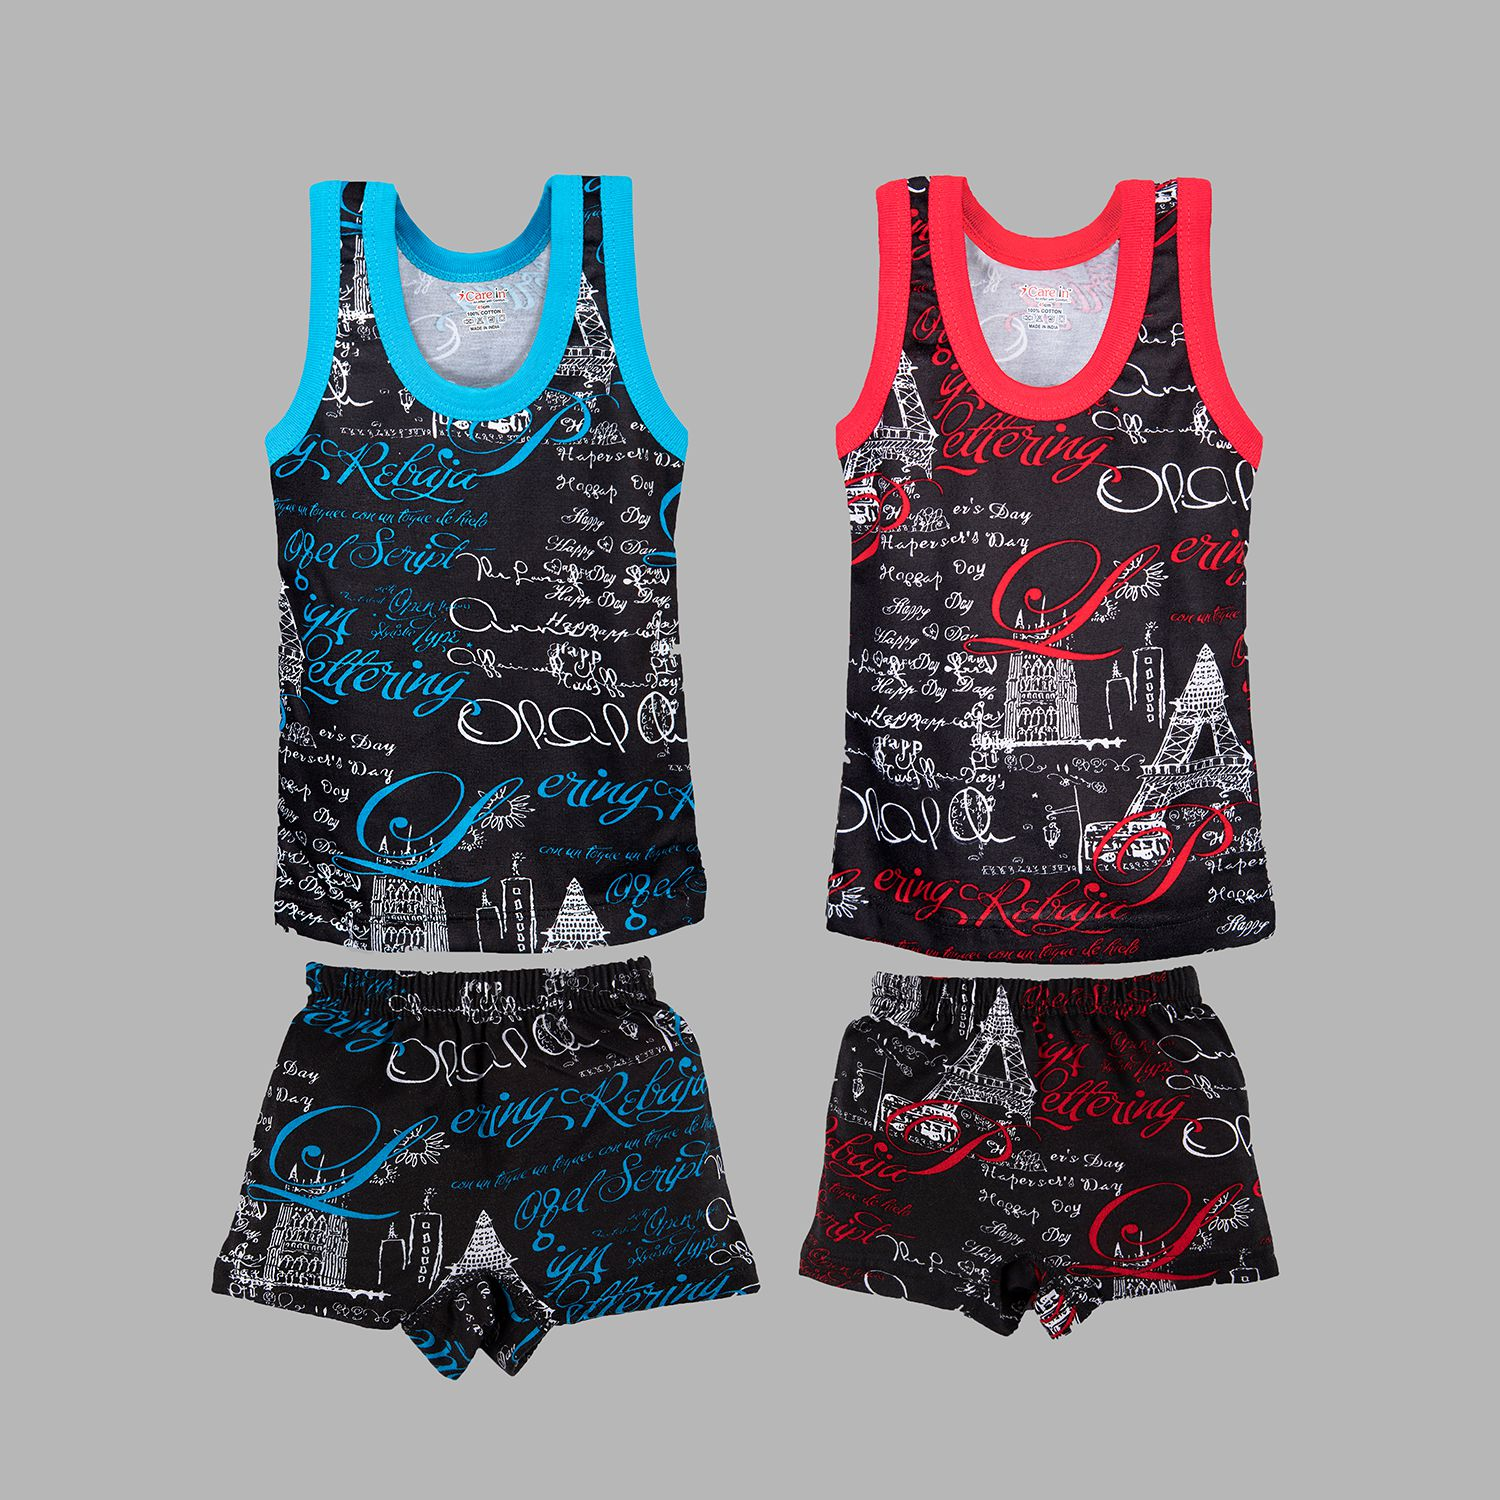 Care in Cotton Procian Print Sleeveless Sando Vest and Short Set for Infants and Kids - Blue and Red Color ( Pack of 2)